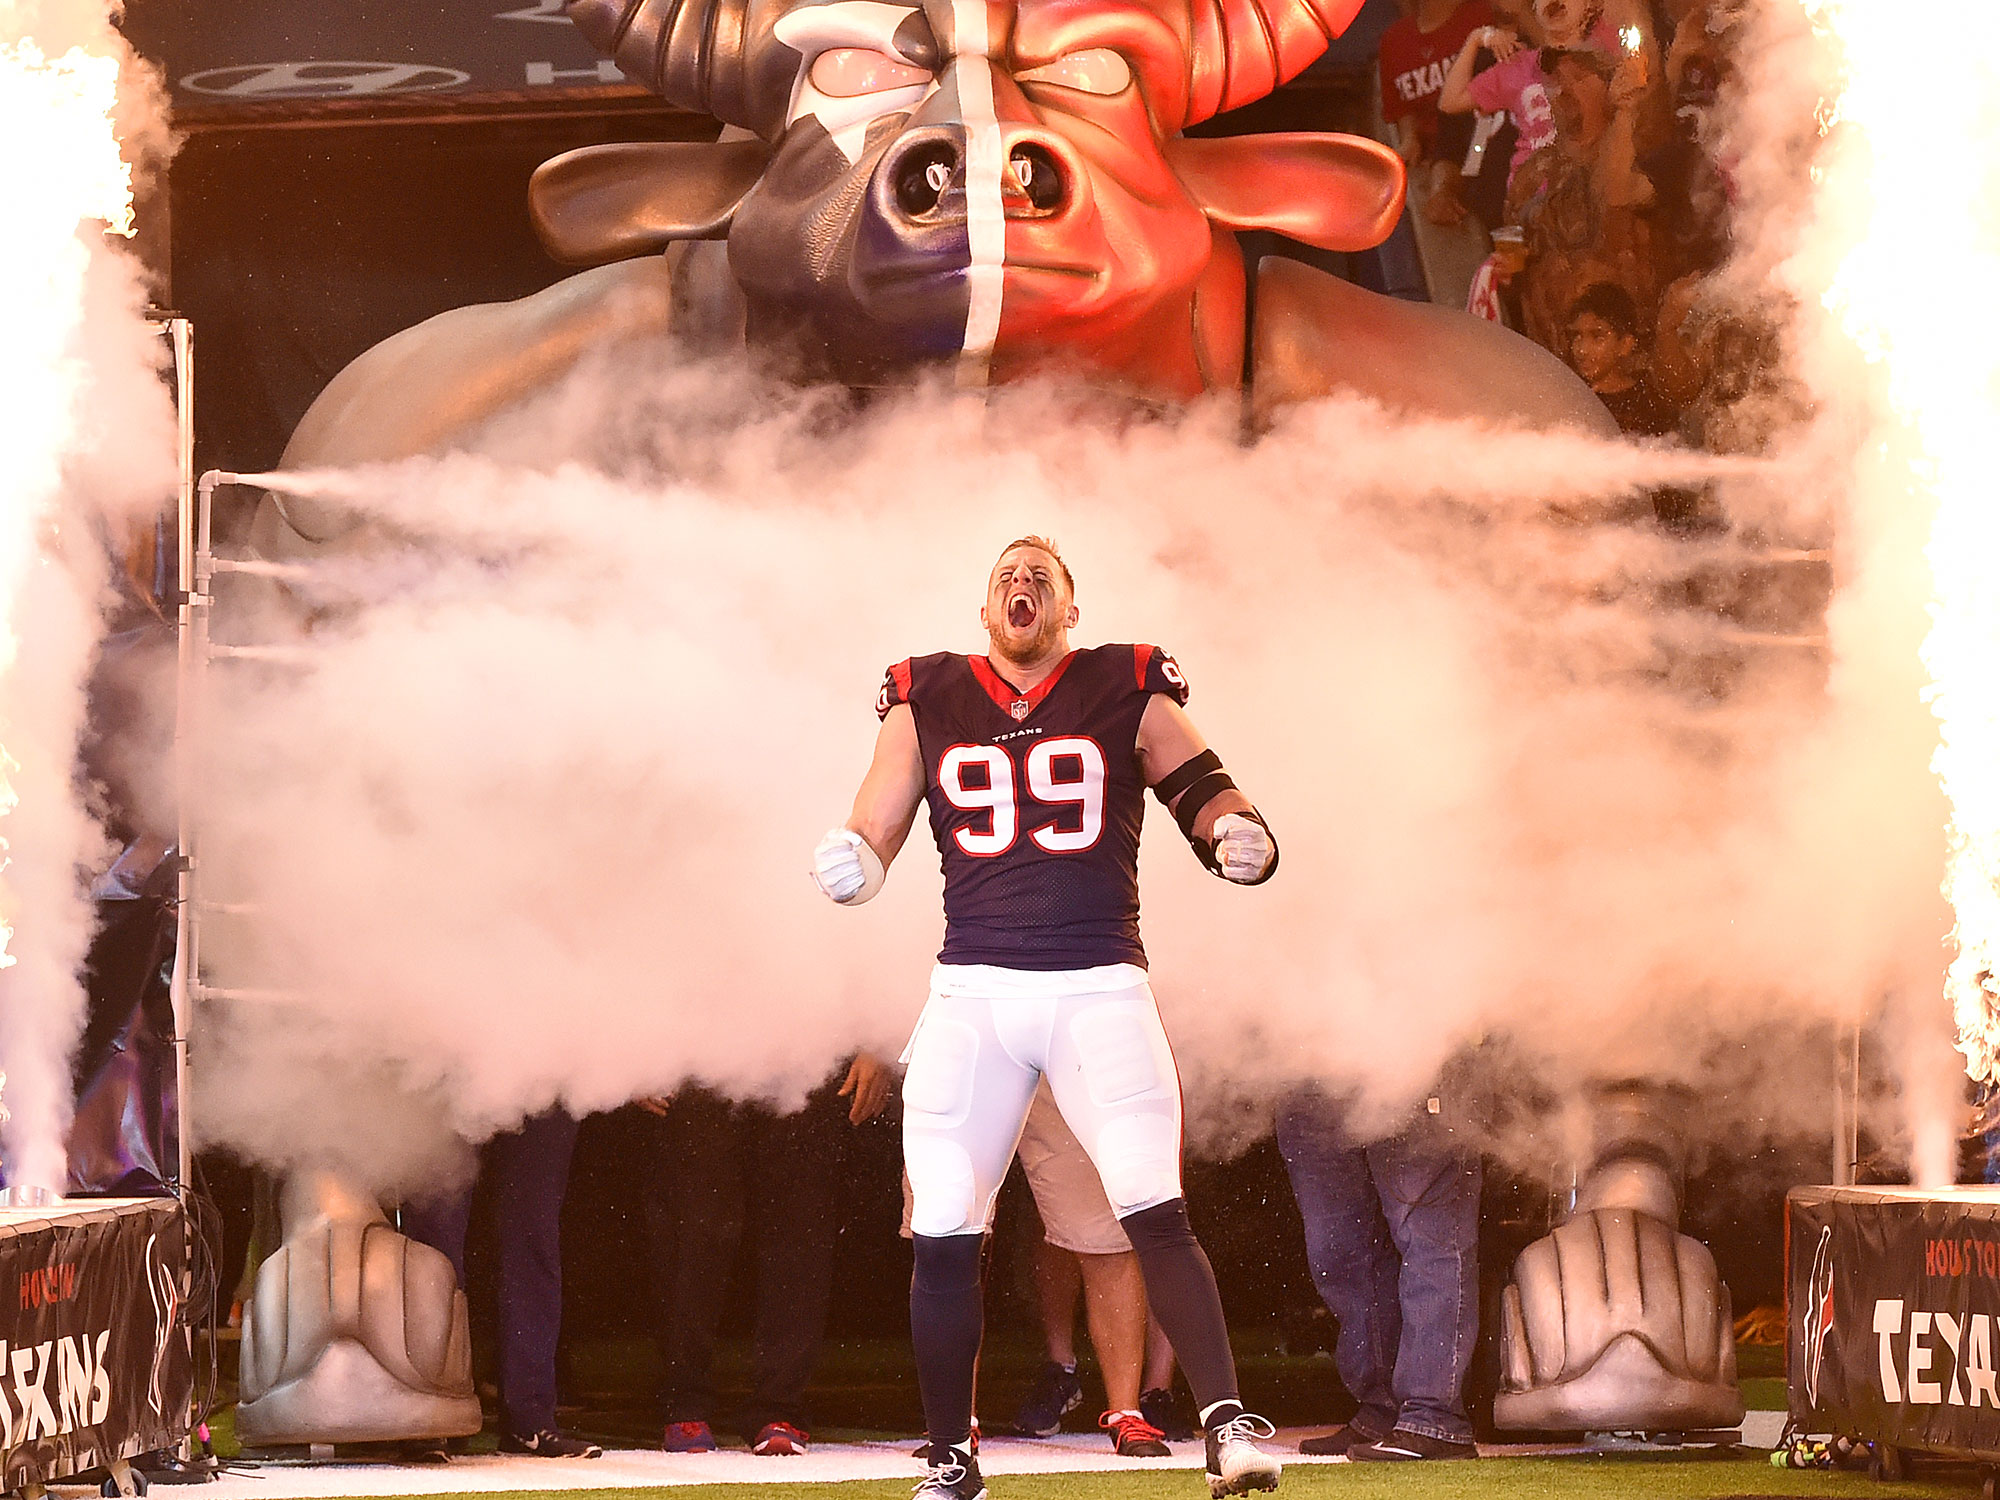 SI's 2017 Sportsperson of the Year founded the Justin J. Watt Foundation, a charity that provides after-school opportunities for children in different communities and aims to get them involved in athletics in a safe environment. With the Texans, Watt has frequently invited disabled and underprivileged children to games and practices. And on Aug. 26 of this year, the three-time NFL Defensive Player of the Year launched a fund on YouCaring.com to raise money for victims of Hurricane Harvey with an initial goal of $200,000. Watt closed the fundraiser after raising an astonishing $37,097,298, which is more than 185 times his initial goal.